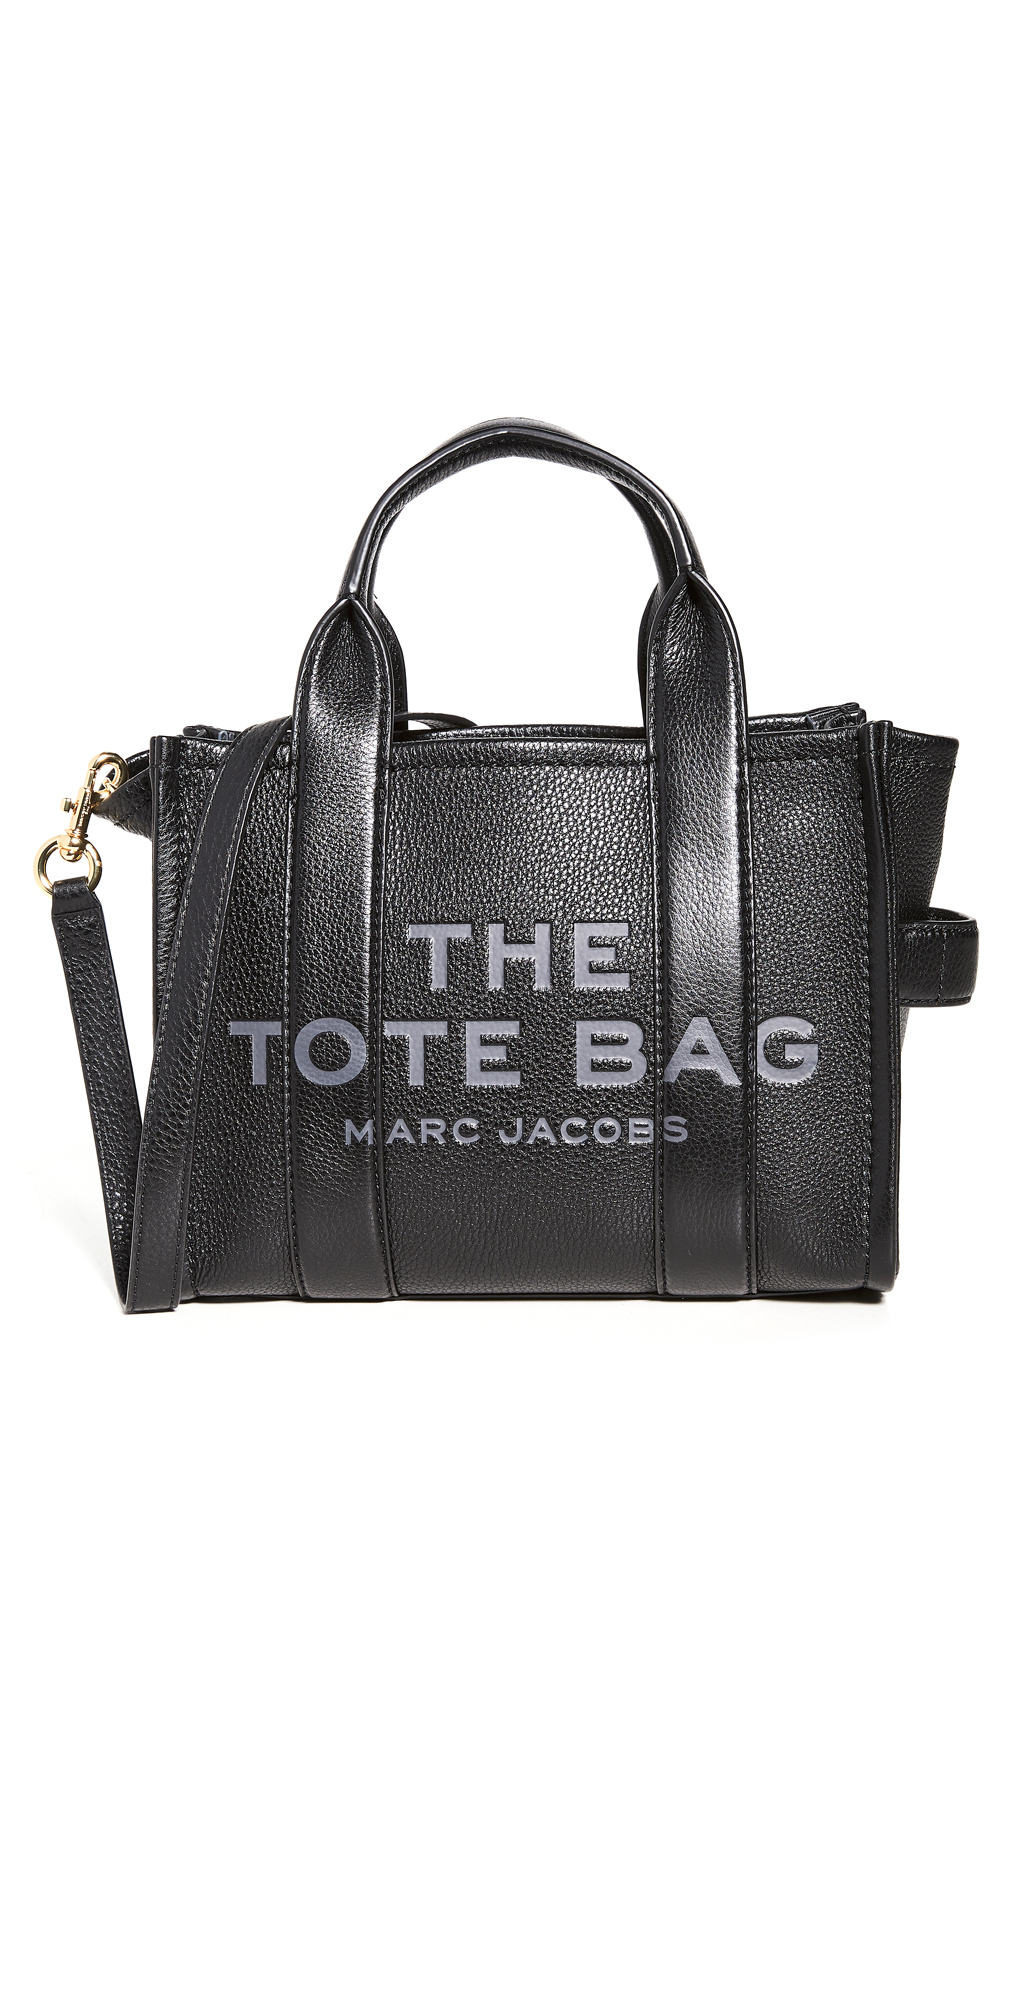 The Marc Jacobs Leathers MINI TRAVELER TOTE